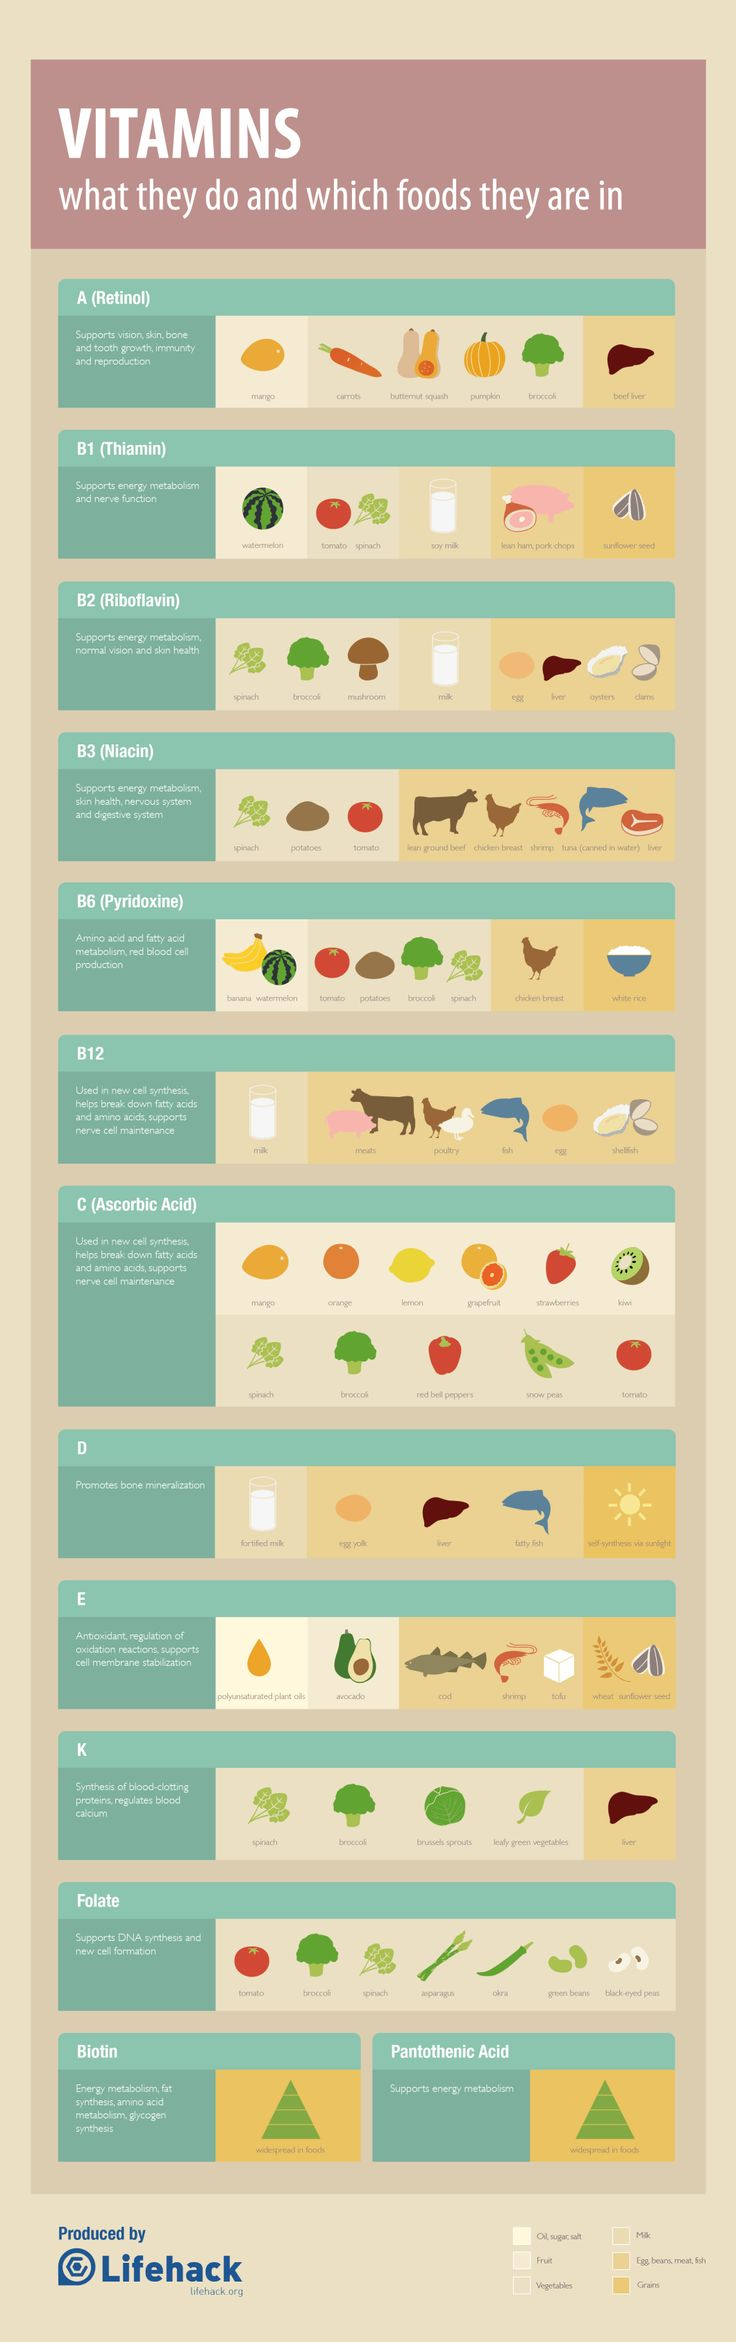 #Vitamins in #Foods.